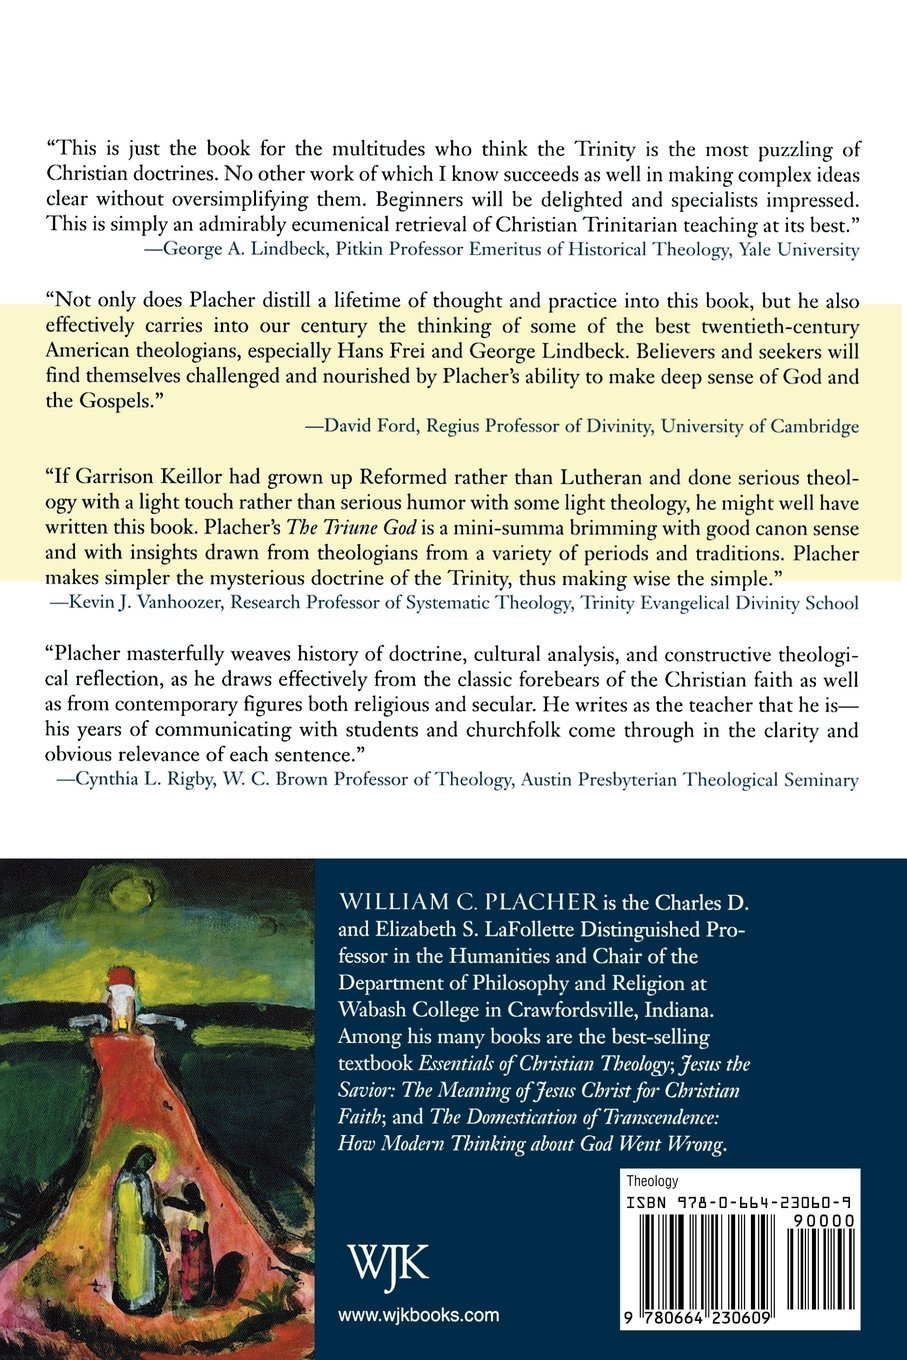 the triune god an essay in postliberal theology william c the triune god an essay in postliberal theology william c placher 9780664230609 com books